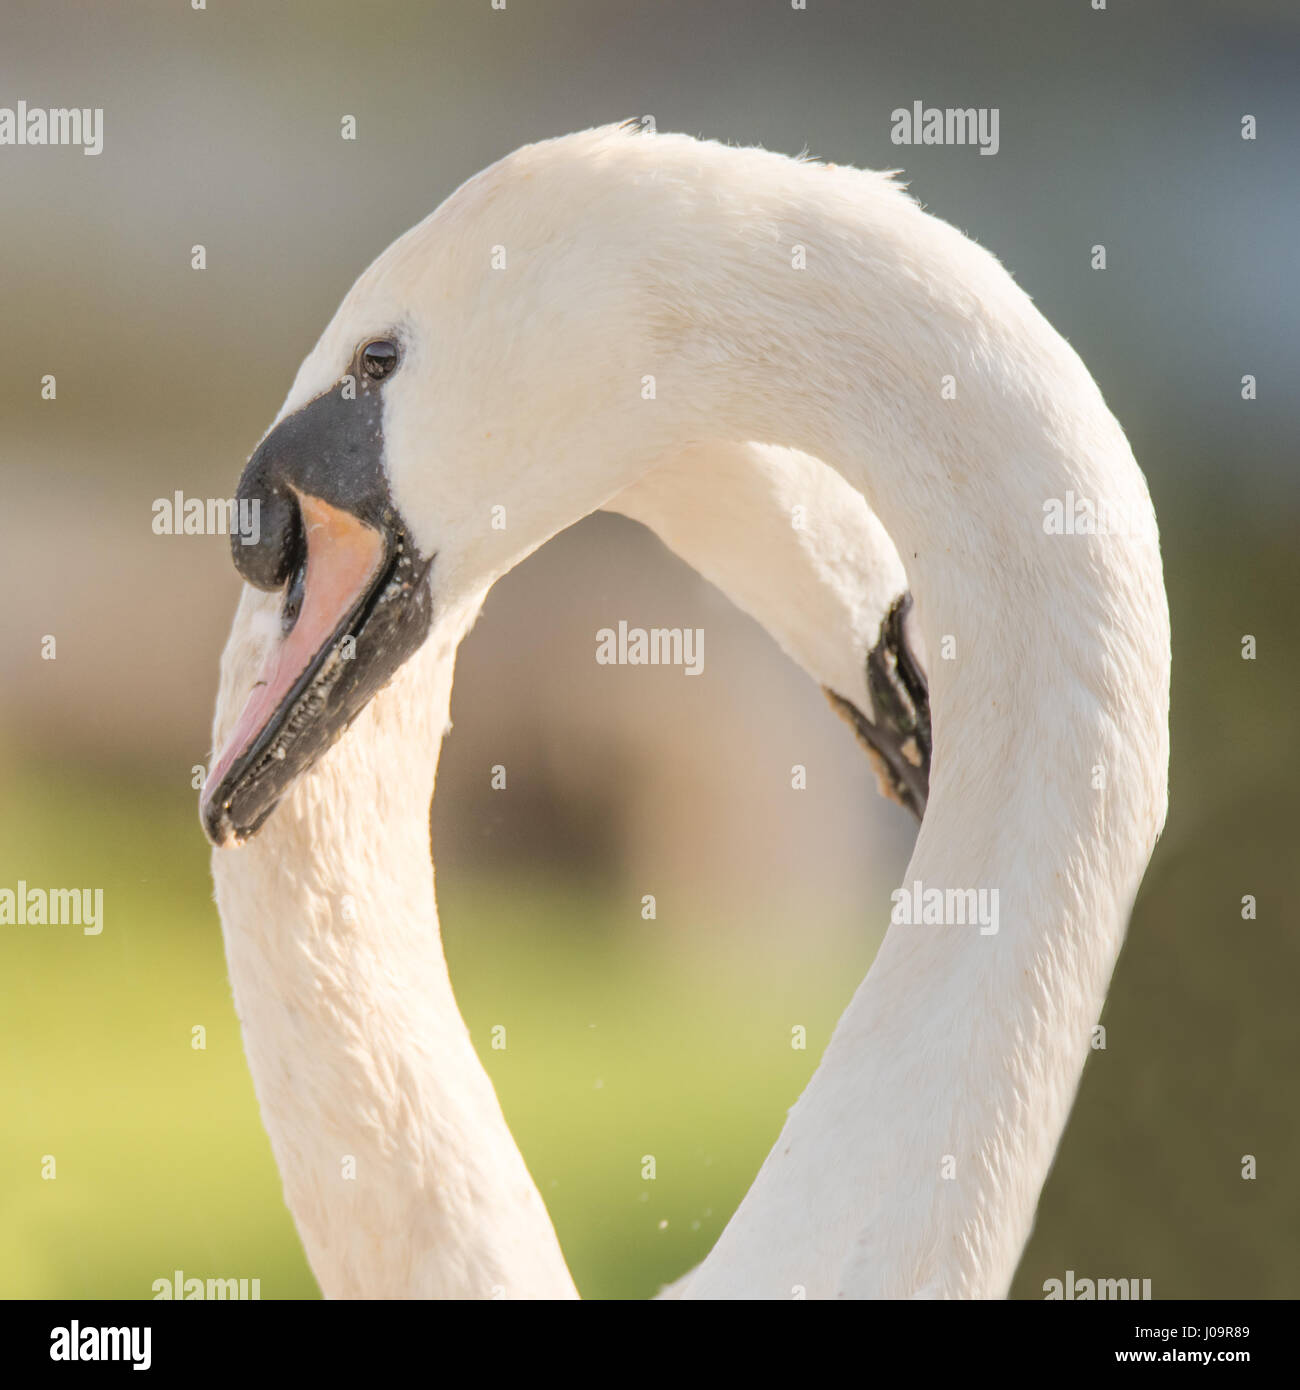 Mute swans making shape of heart with necks. Pair of swans (Cygnus olor)  forming heart-shaped space as part of Stock Photo